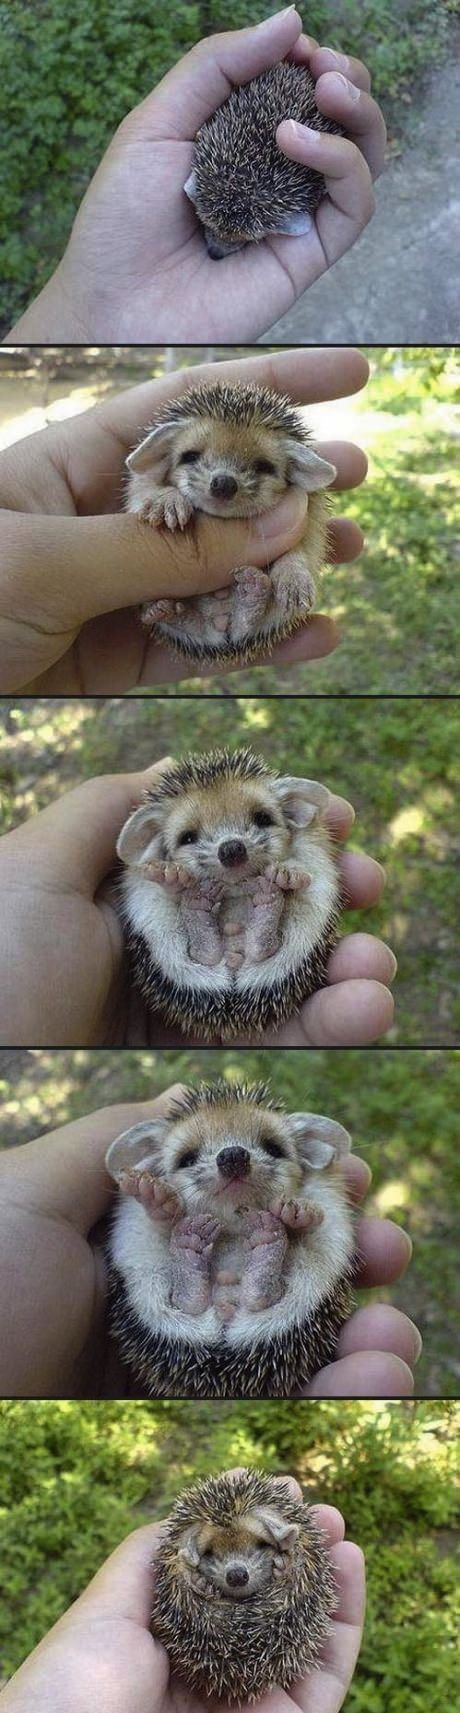 So much hedgehog cuteness.Awww, Stuff, Baby Animal, Adorable, Baby Hedgehogs, Box, Things, Smile, Pets Hedgehogs